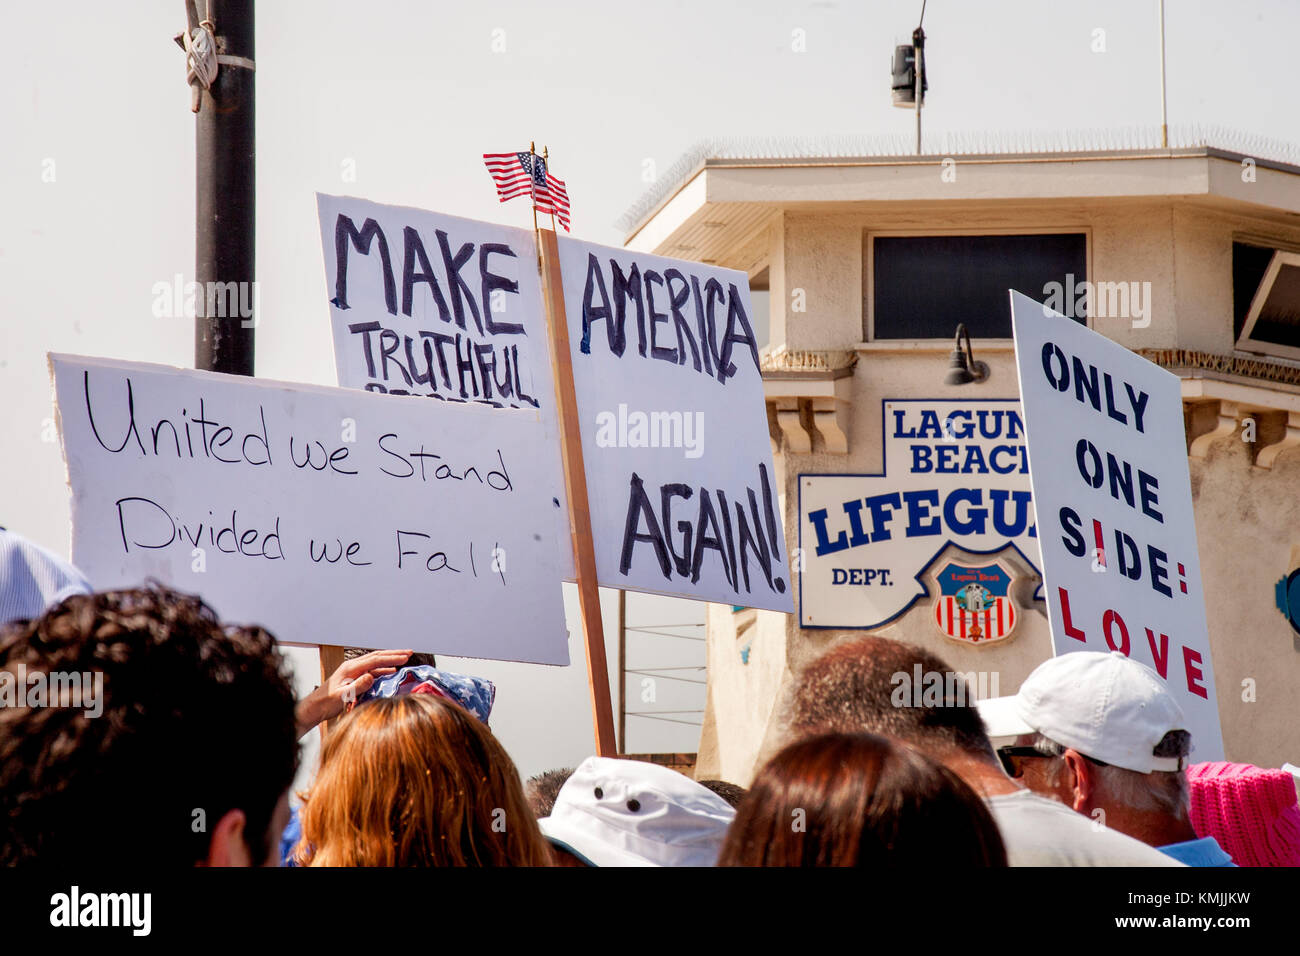 Multiracial counter demonstrators expresses toleration at an adjacent anti-immigration rally in Laguna Beach, CA. - Stock Image